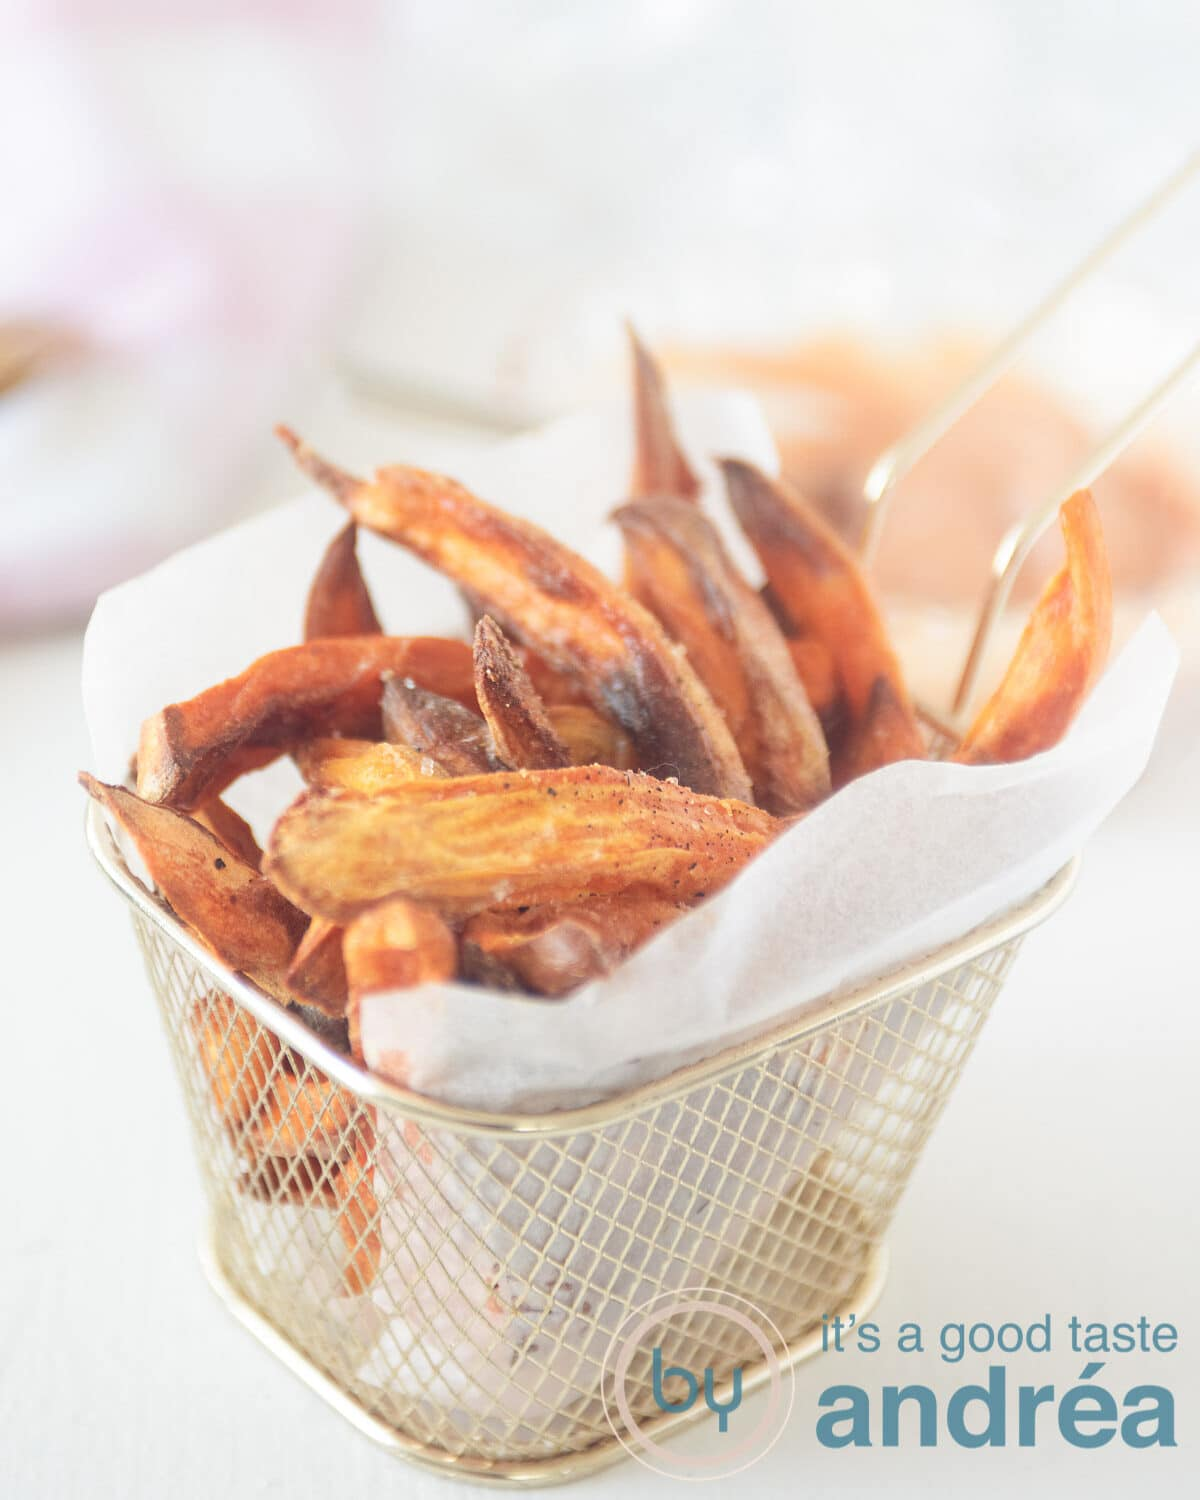 In the middle a golden fries tray in which a baking paper is folded with sweet potato fries in it